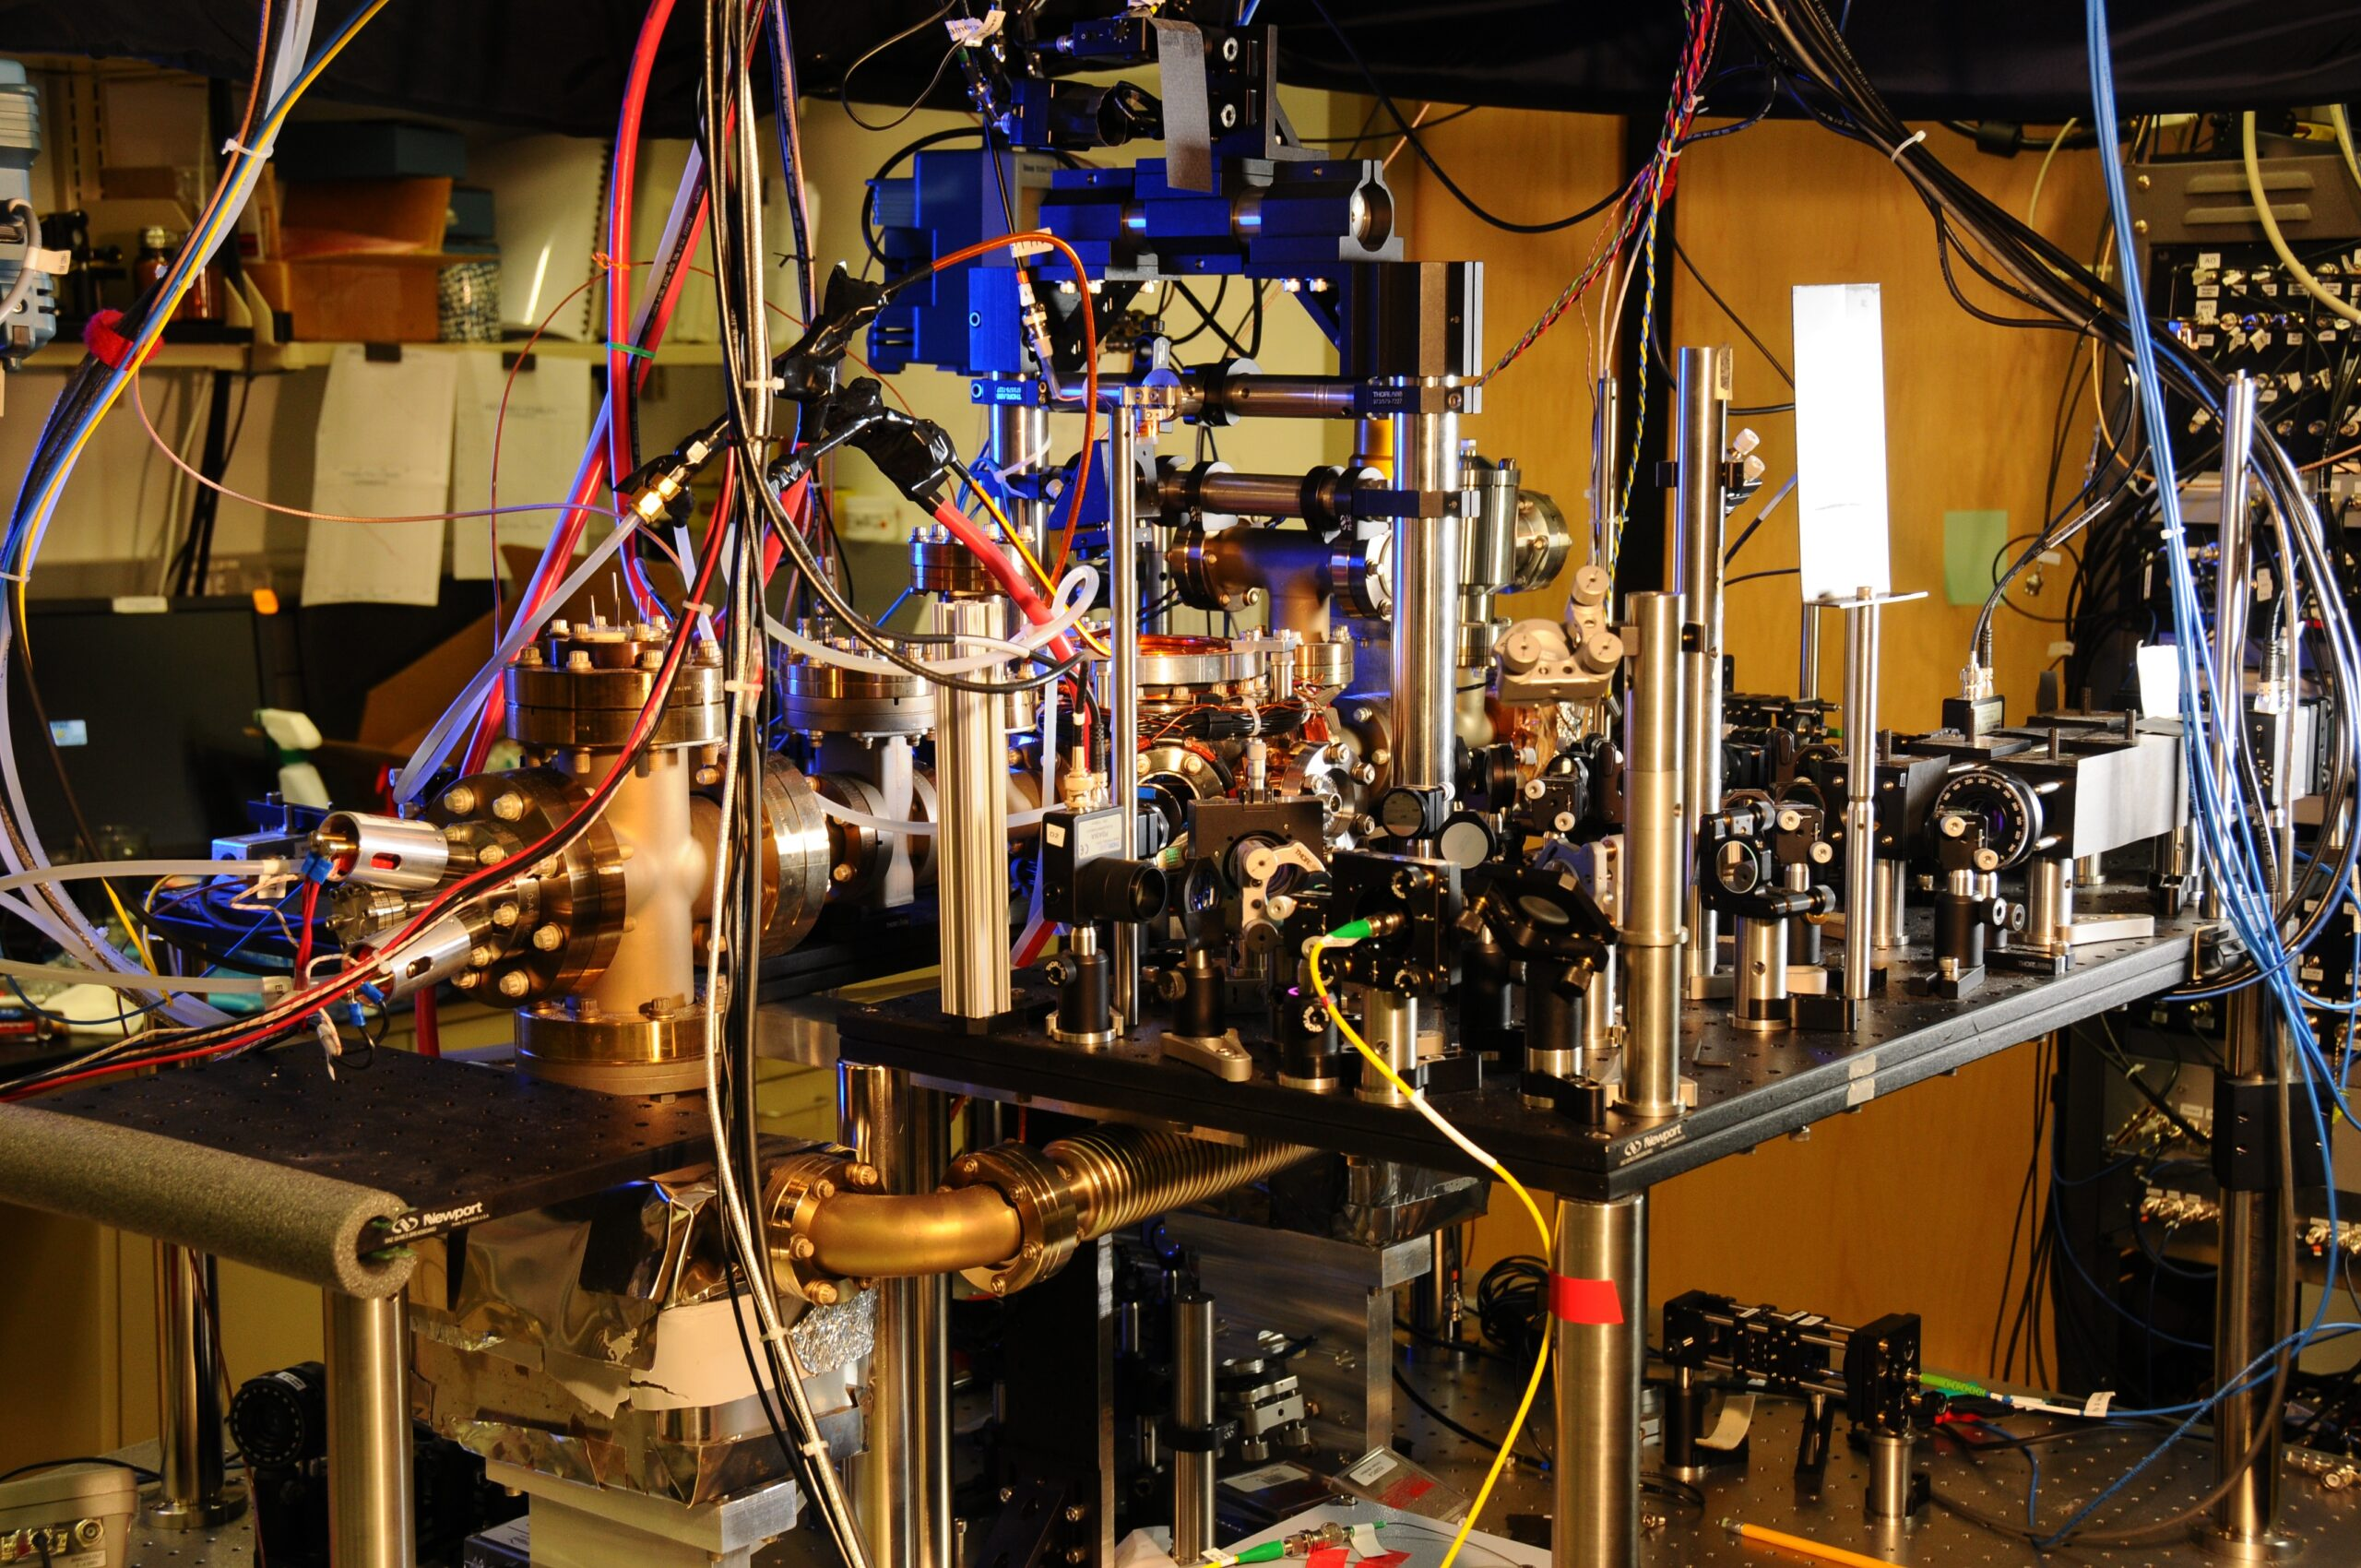 The World's Most Precise Clocks: 100 Times More Precise Than Cesium Atomic Clocks